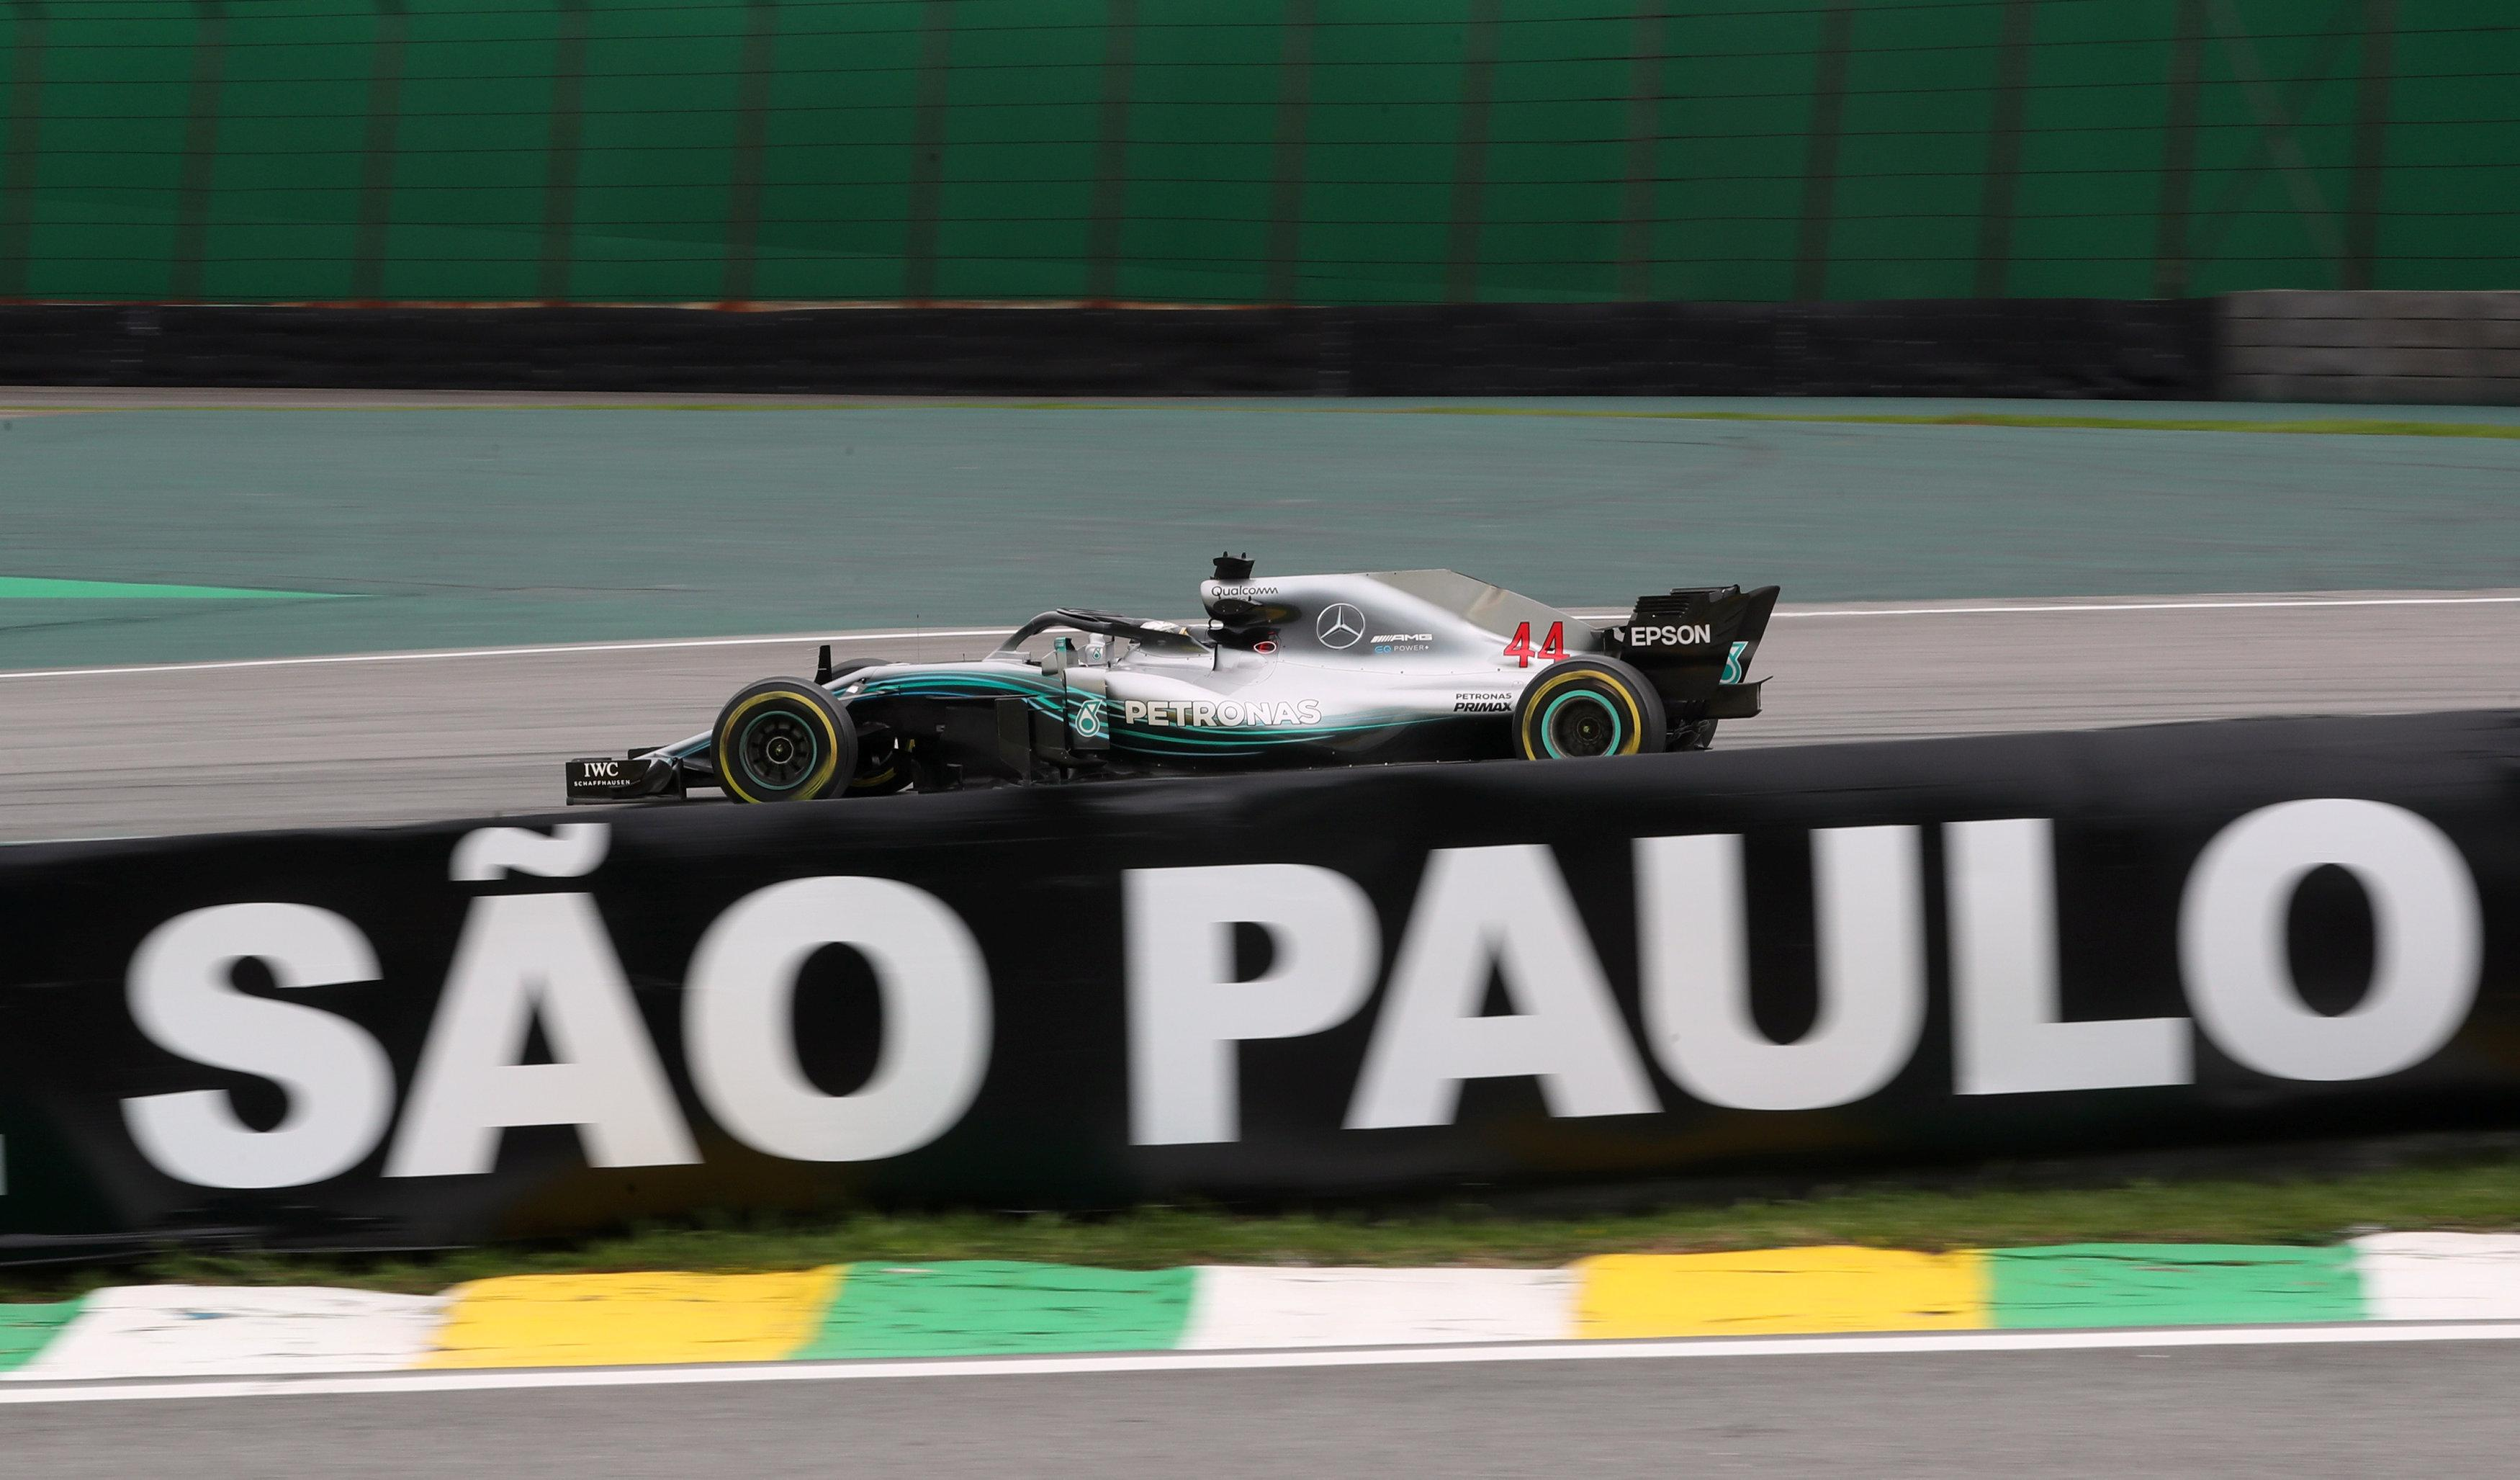 Victory in the Brazilian GP would confirm the dominance of  Lewis Hamilton